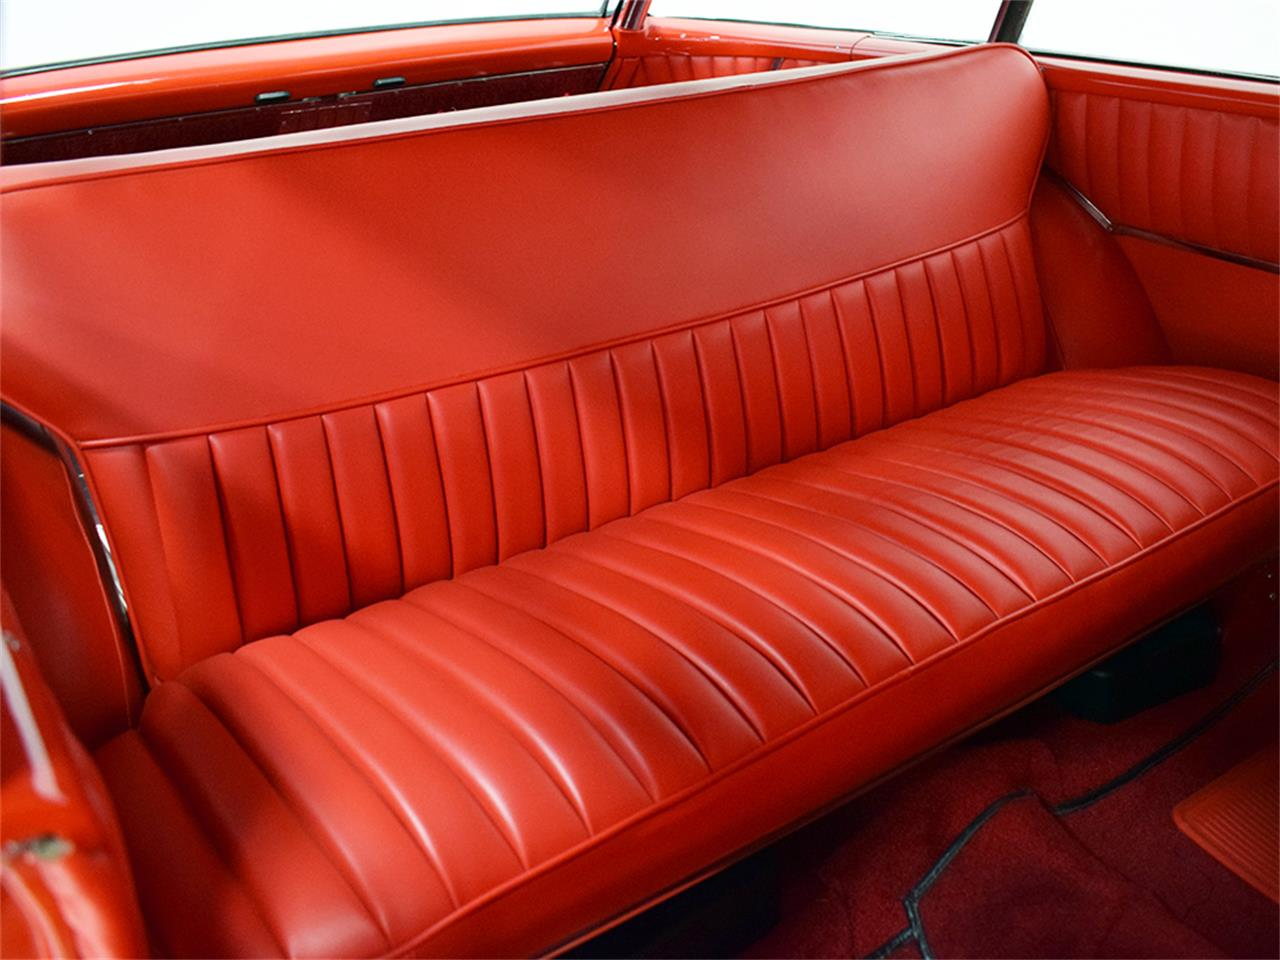 Large Picture of 1955 Chevrolet Nomad Offered by Harwood Motors, LTD. - O8YP